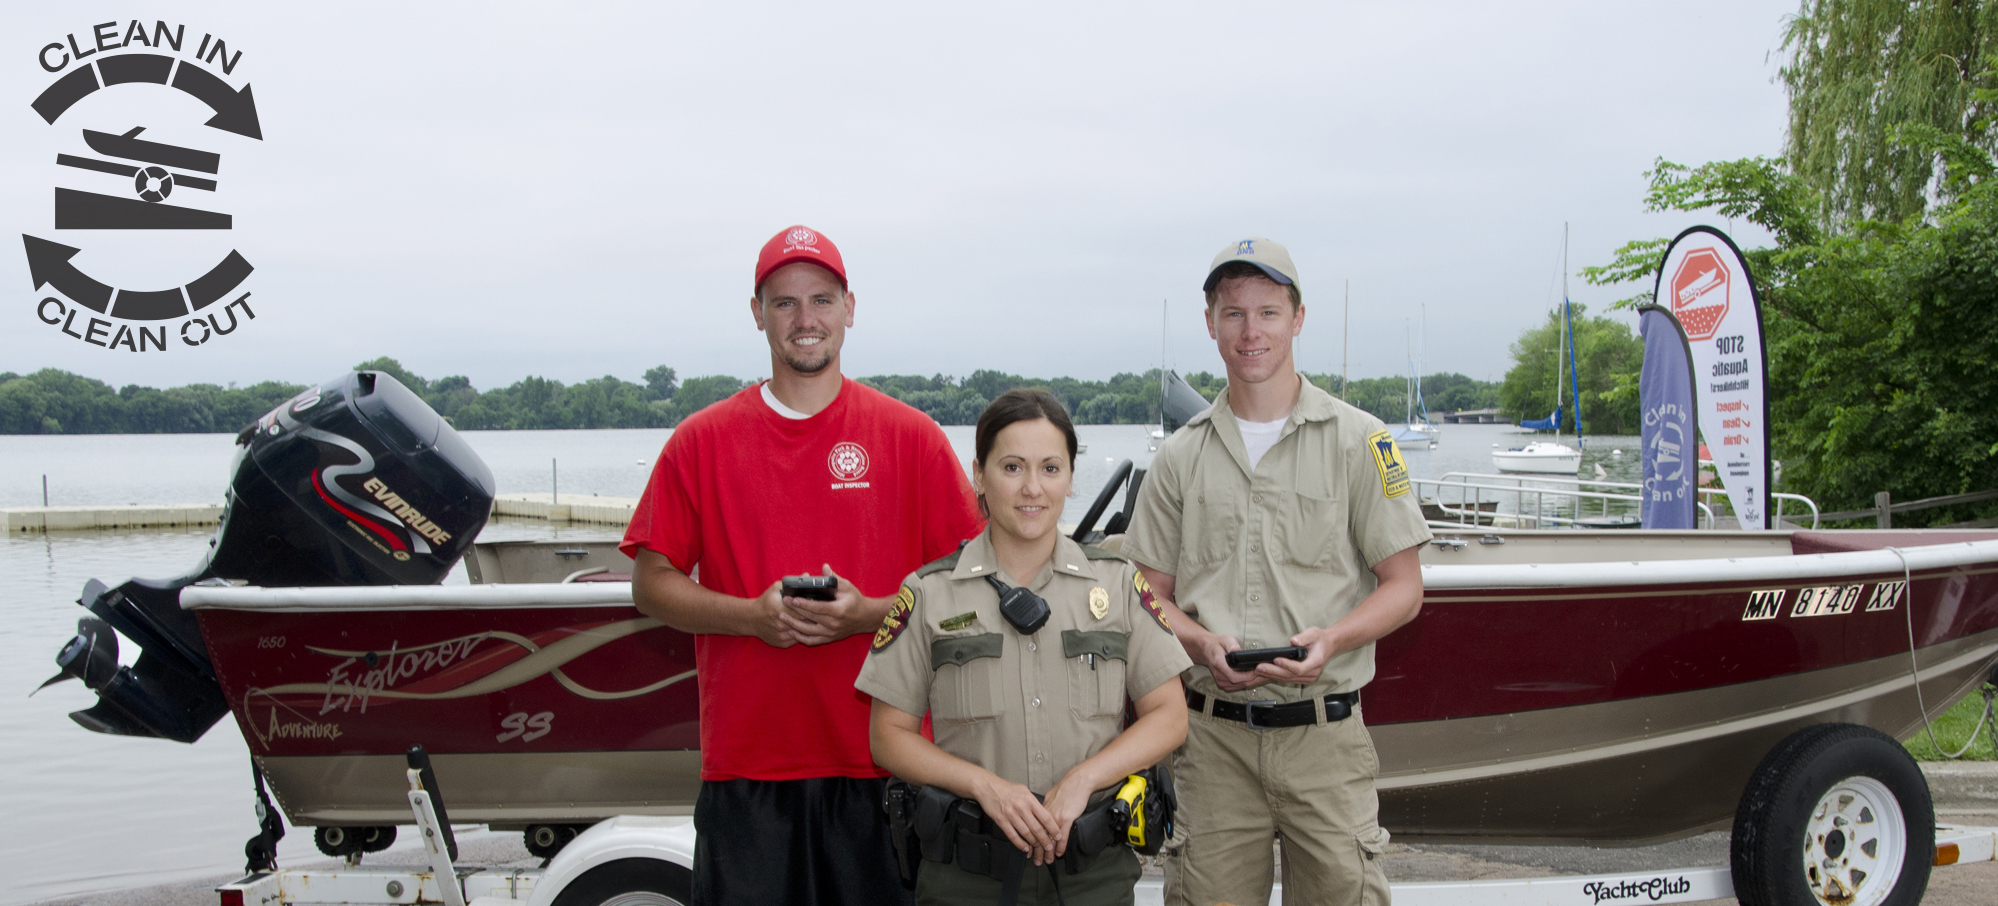 Clean in Clean out - DNR ais staff near a boat launch